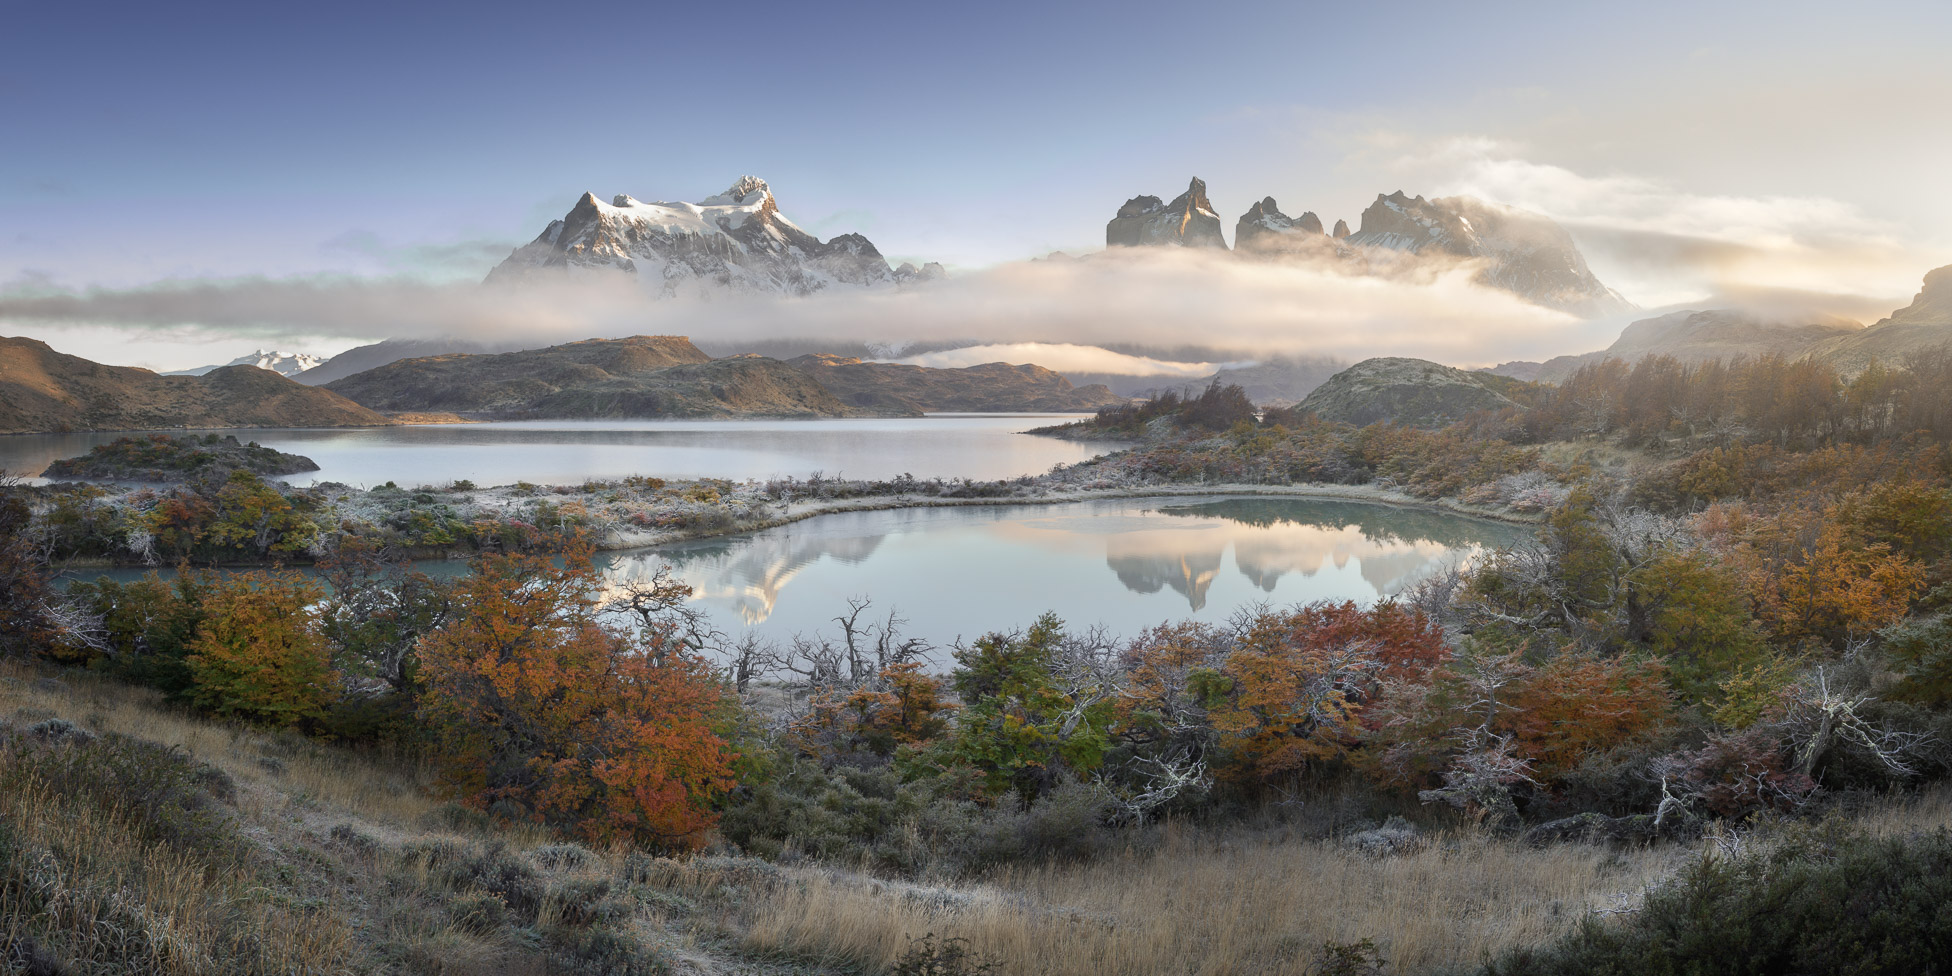 Panorama of Pehoe Lake and Cuernos Peaks in the Morning, Torres del Paine National Park, Chile